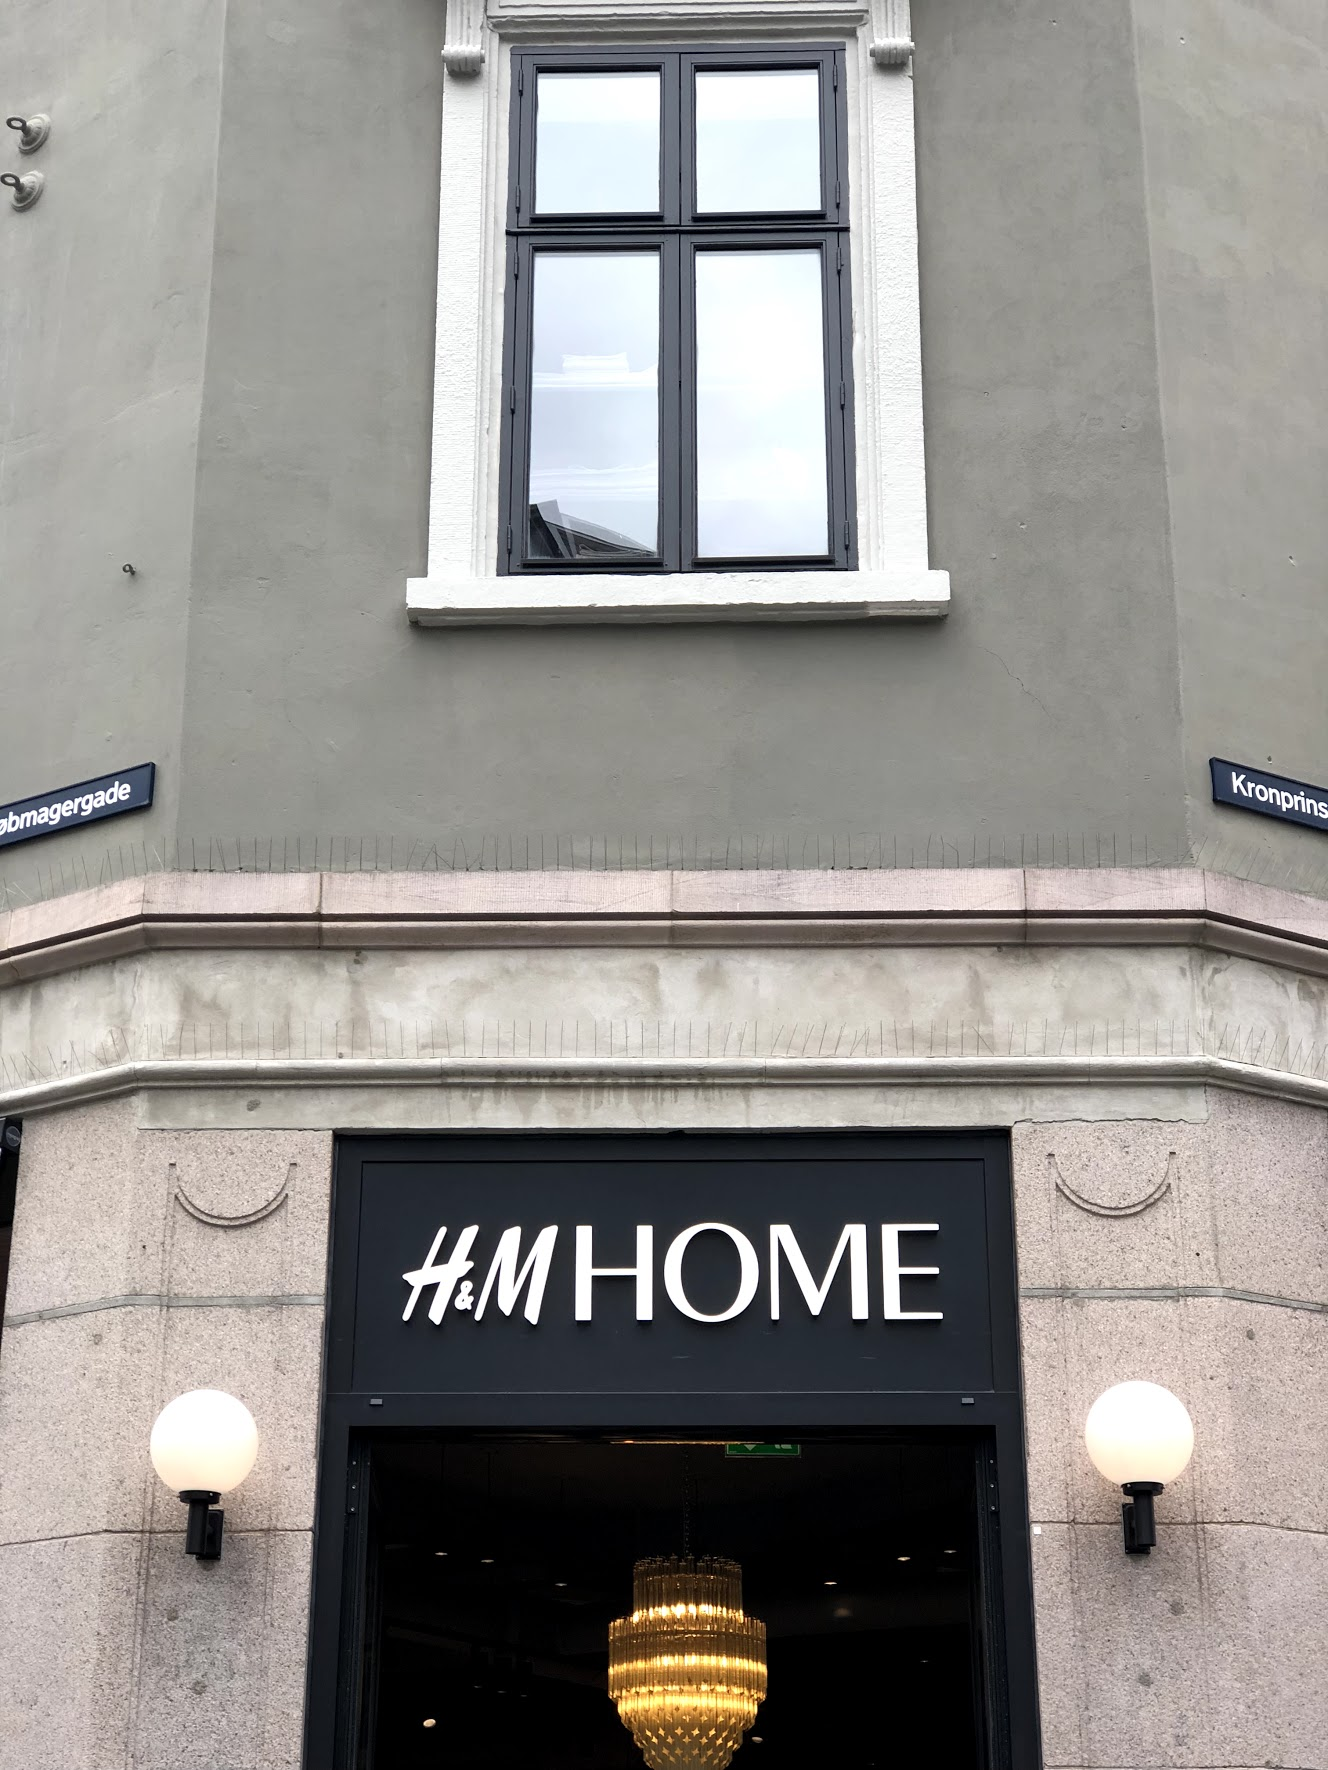 The New Hm Home Concept Store In Copenhagen September Edit